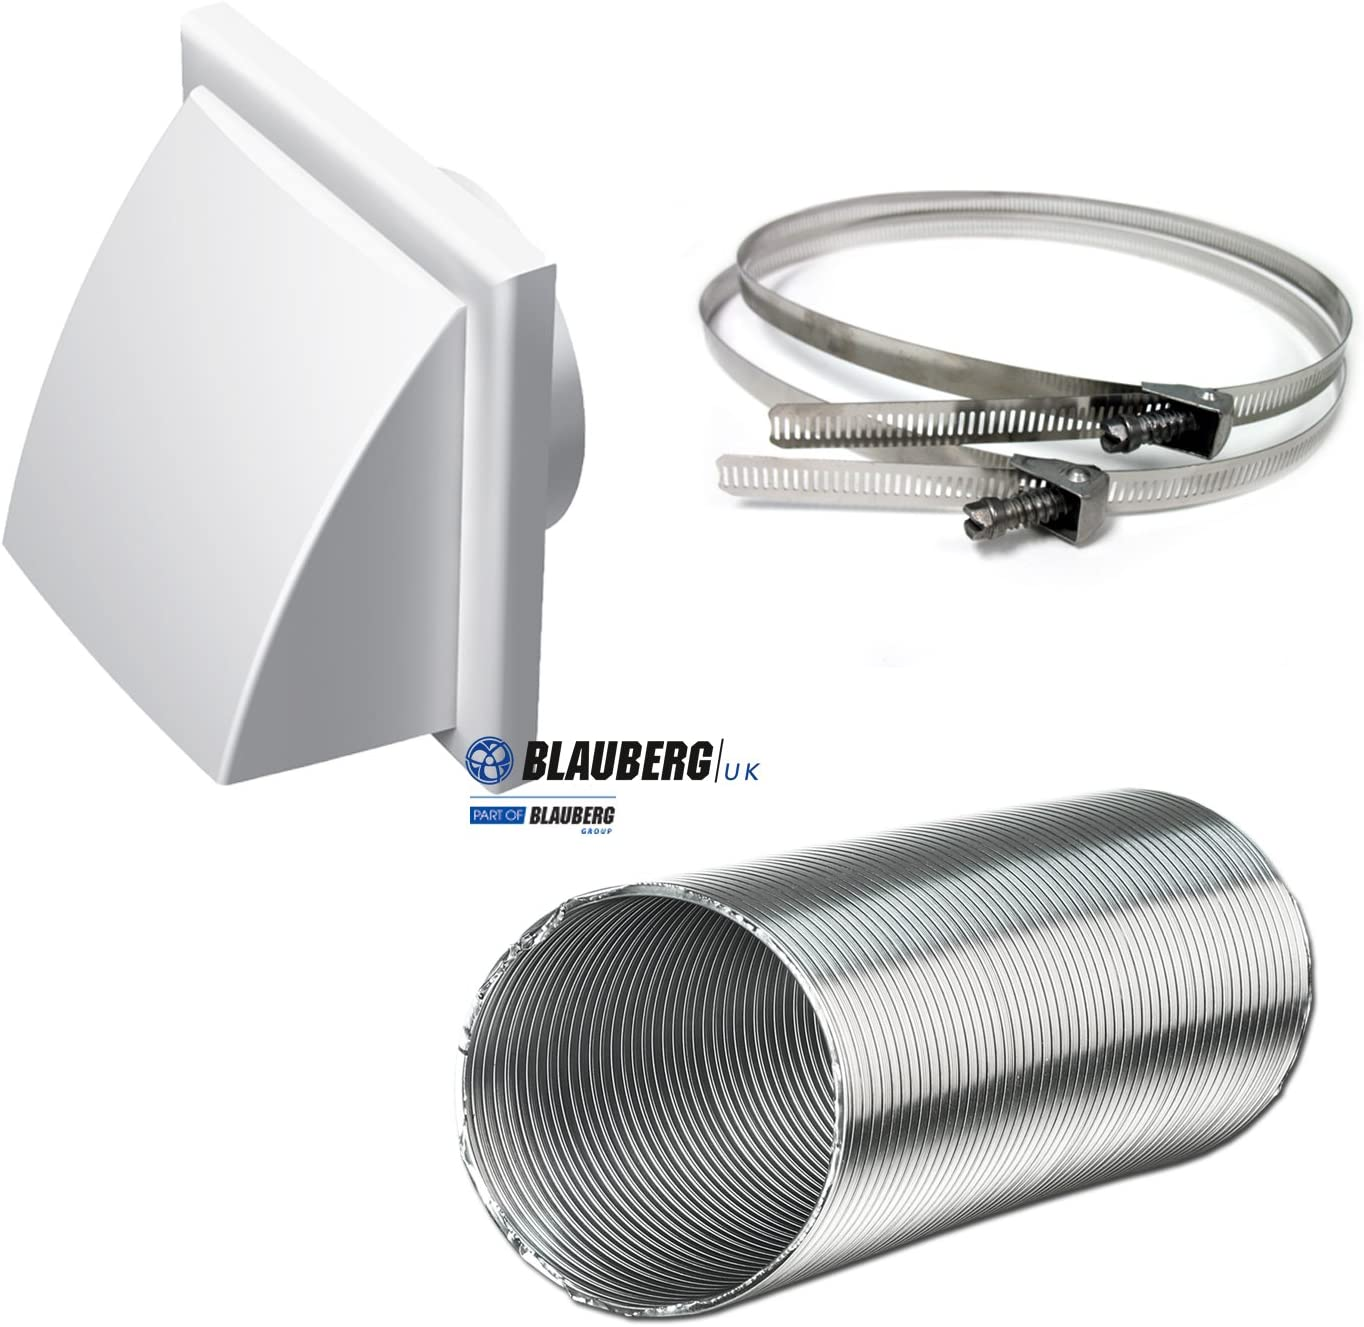 6 Grey Cooker Hood Wall Ventilation Duct Cowled Grille Shutter Vent Kit Bathroom Fan or Kitchen Hob Extractor